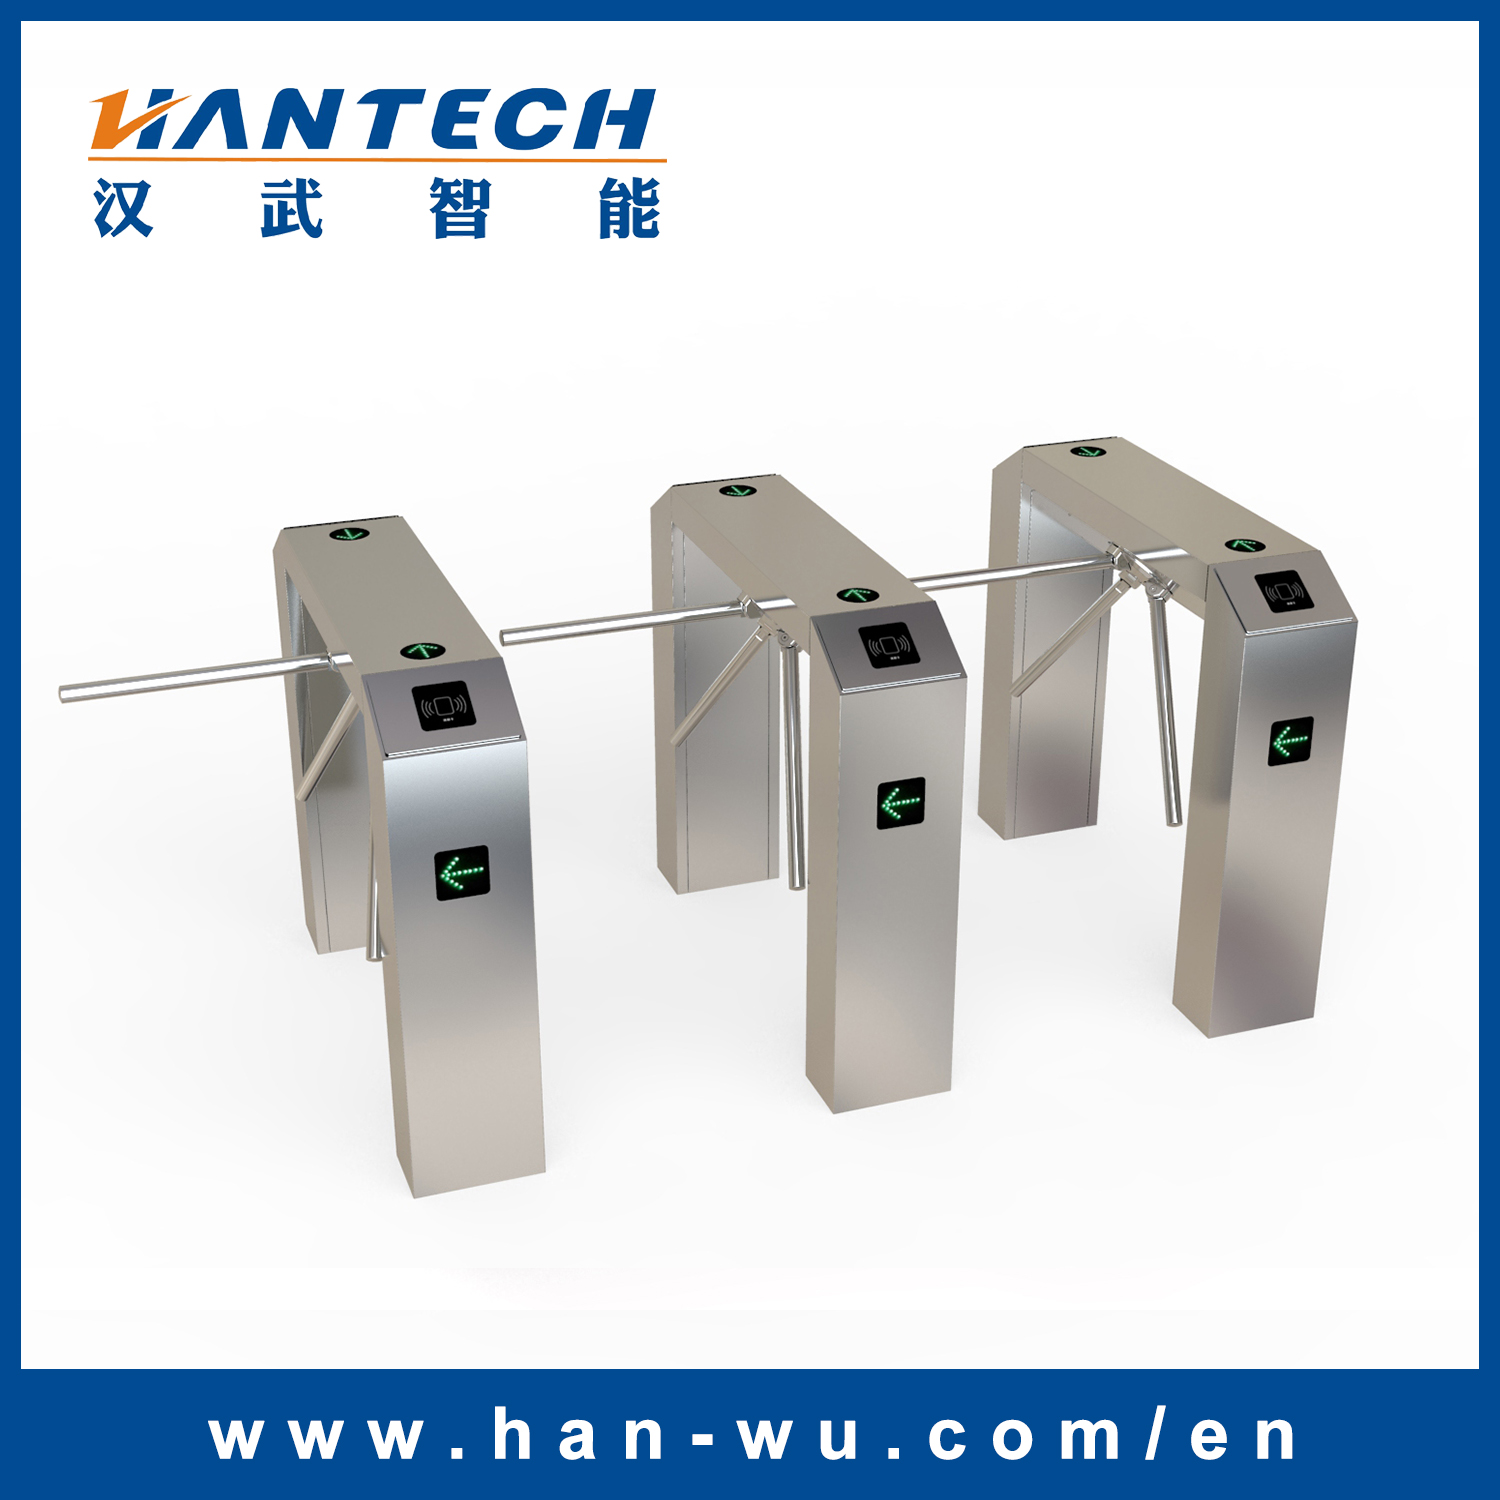 Waist High Turnstile Gate with Card Access Torniquetes Fabricantes